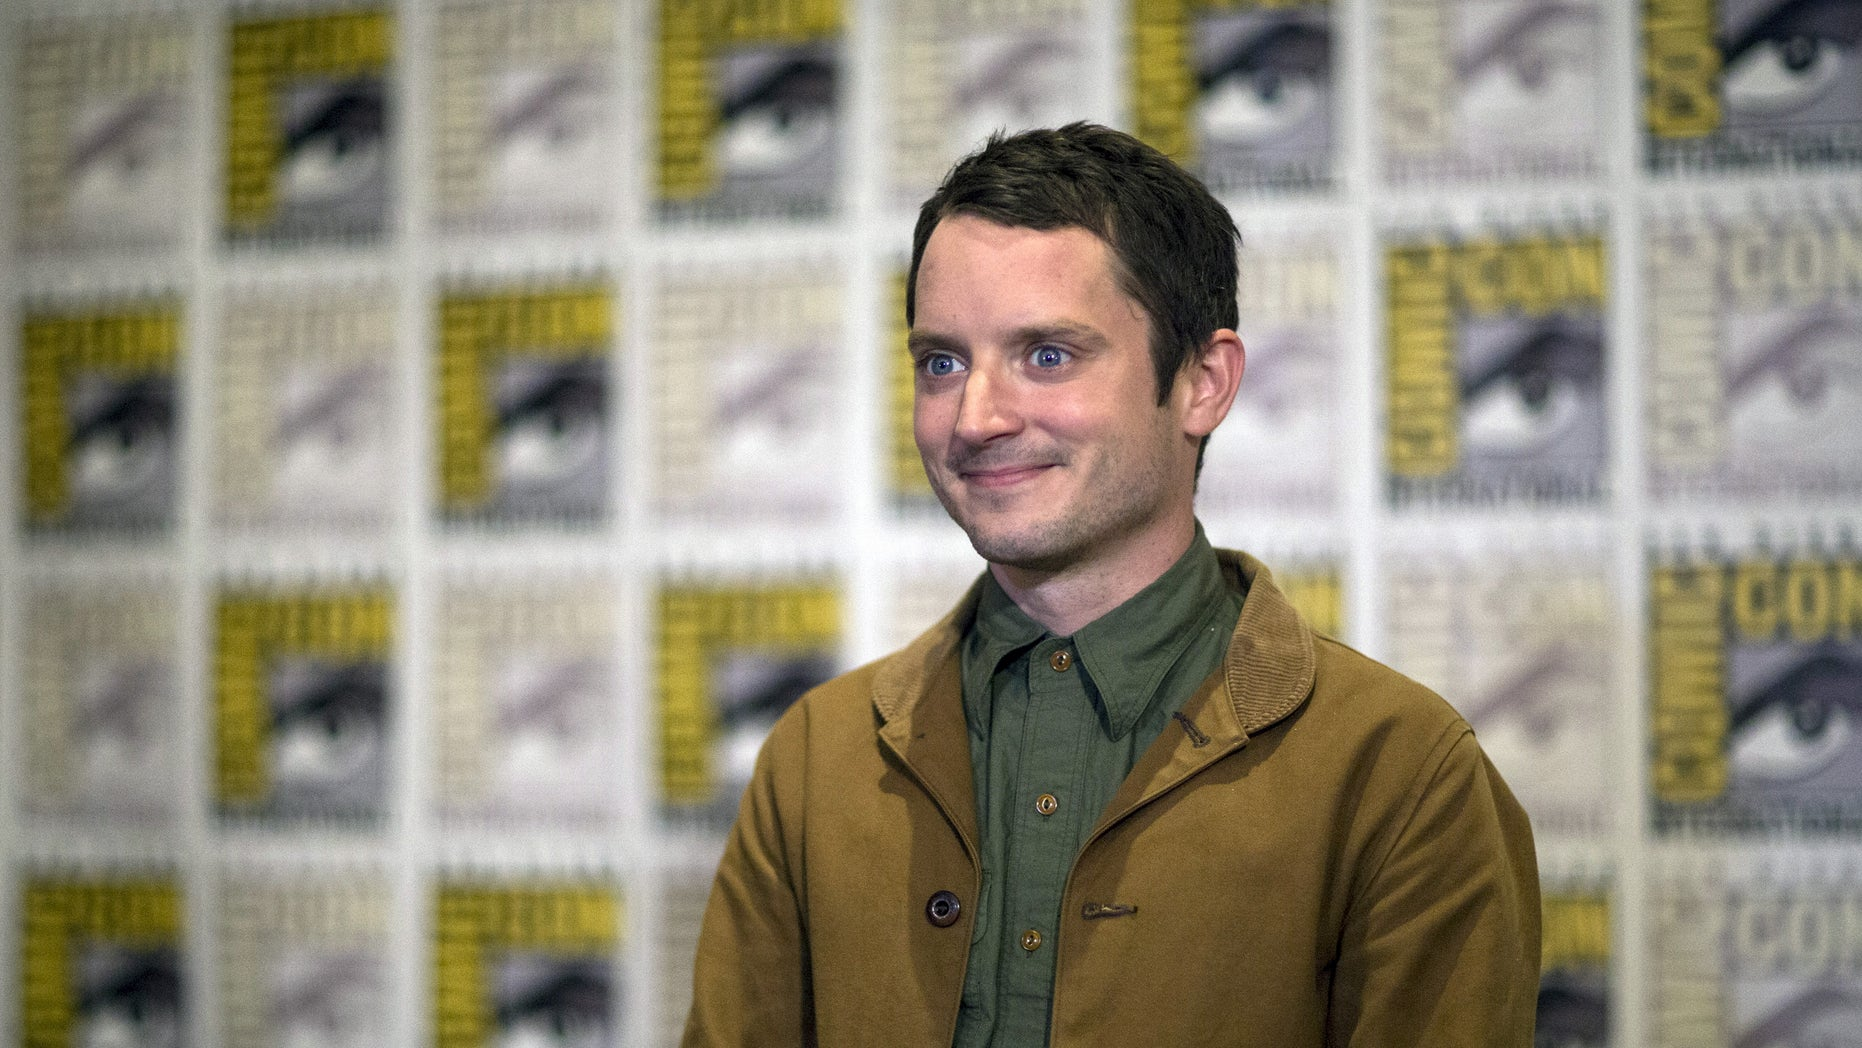 """Actor Elijah Wood poses at a press line for """"The Hunger Games: Mockingjay - Part 2"""" during the 2015 Comic-Con International Convention in San Diego, California July 9, 2015. REUTERS/Mario Anzuoni - RTX1JSRV"""